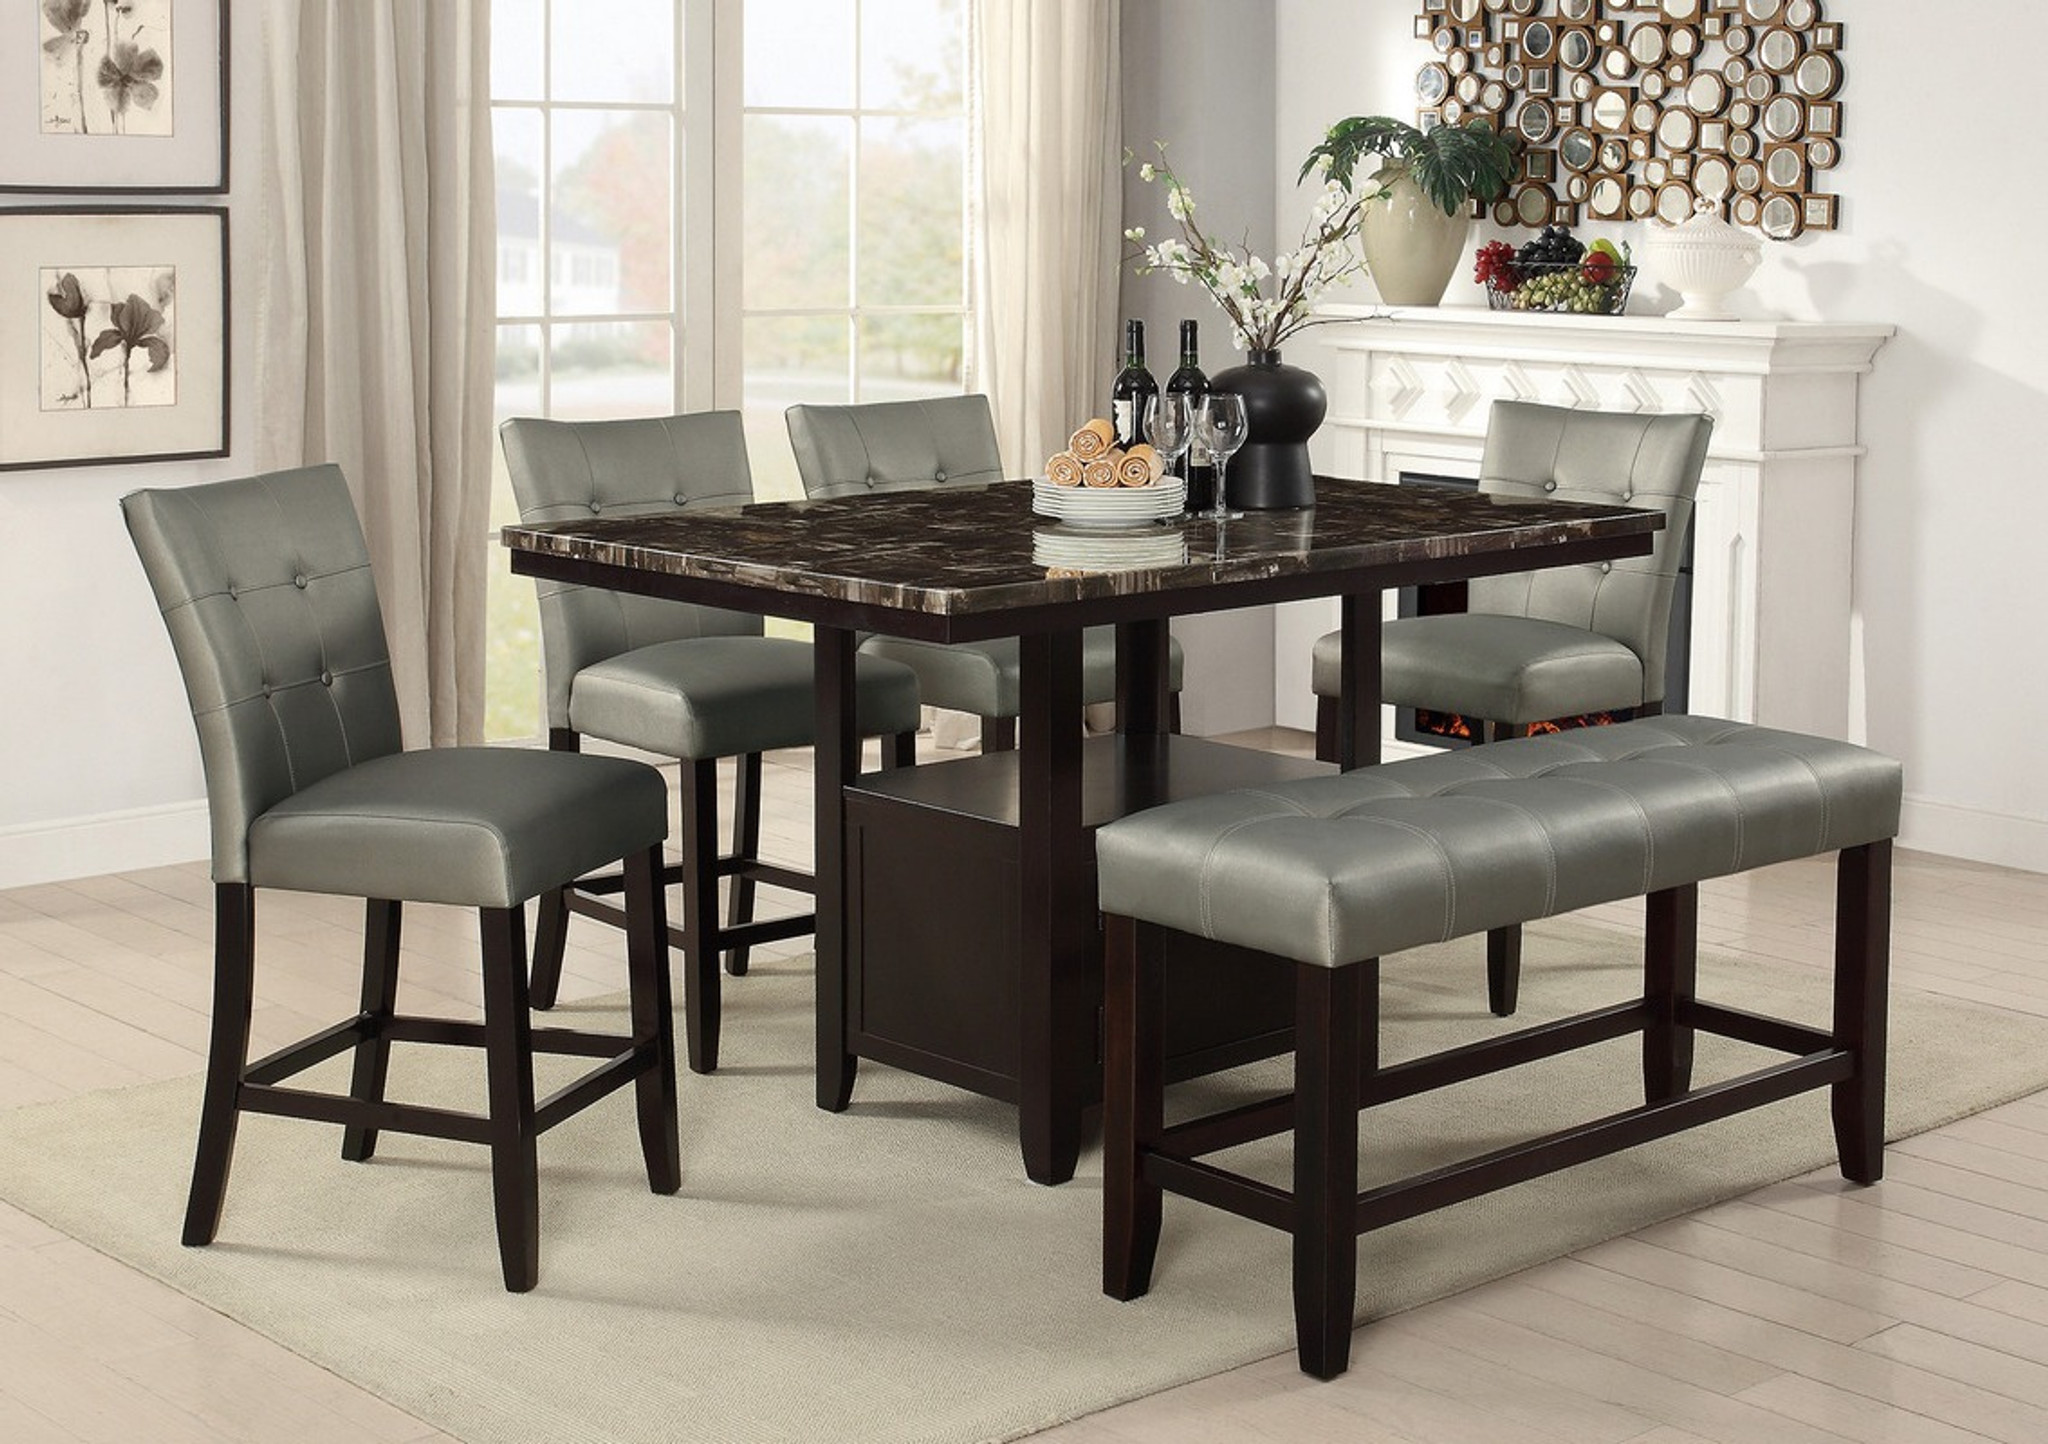 5PCS FAUX MARBLE TOP TABLE DINING SET